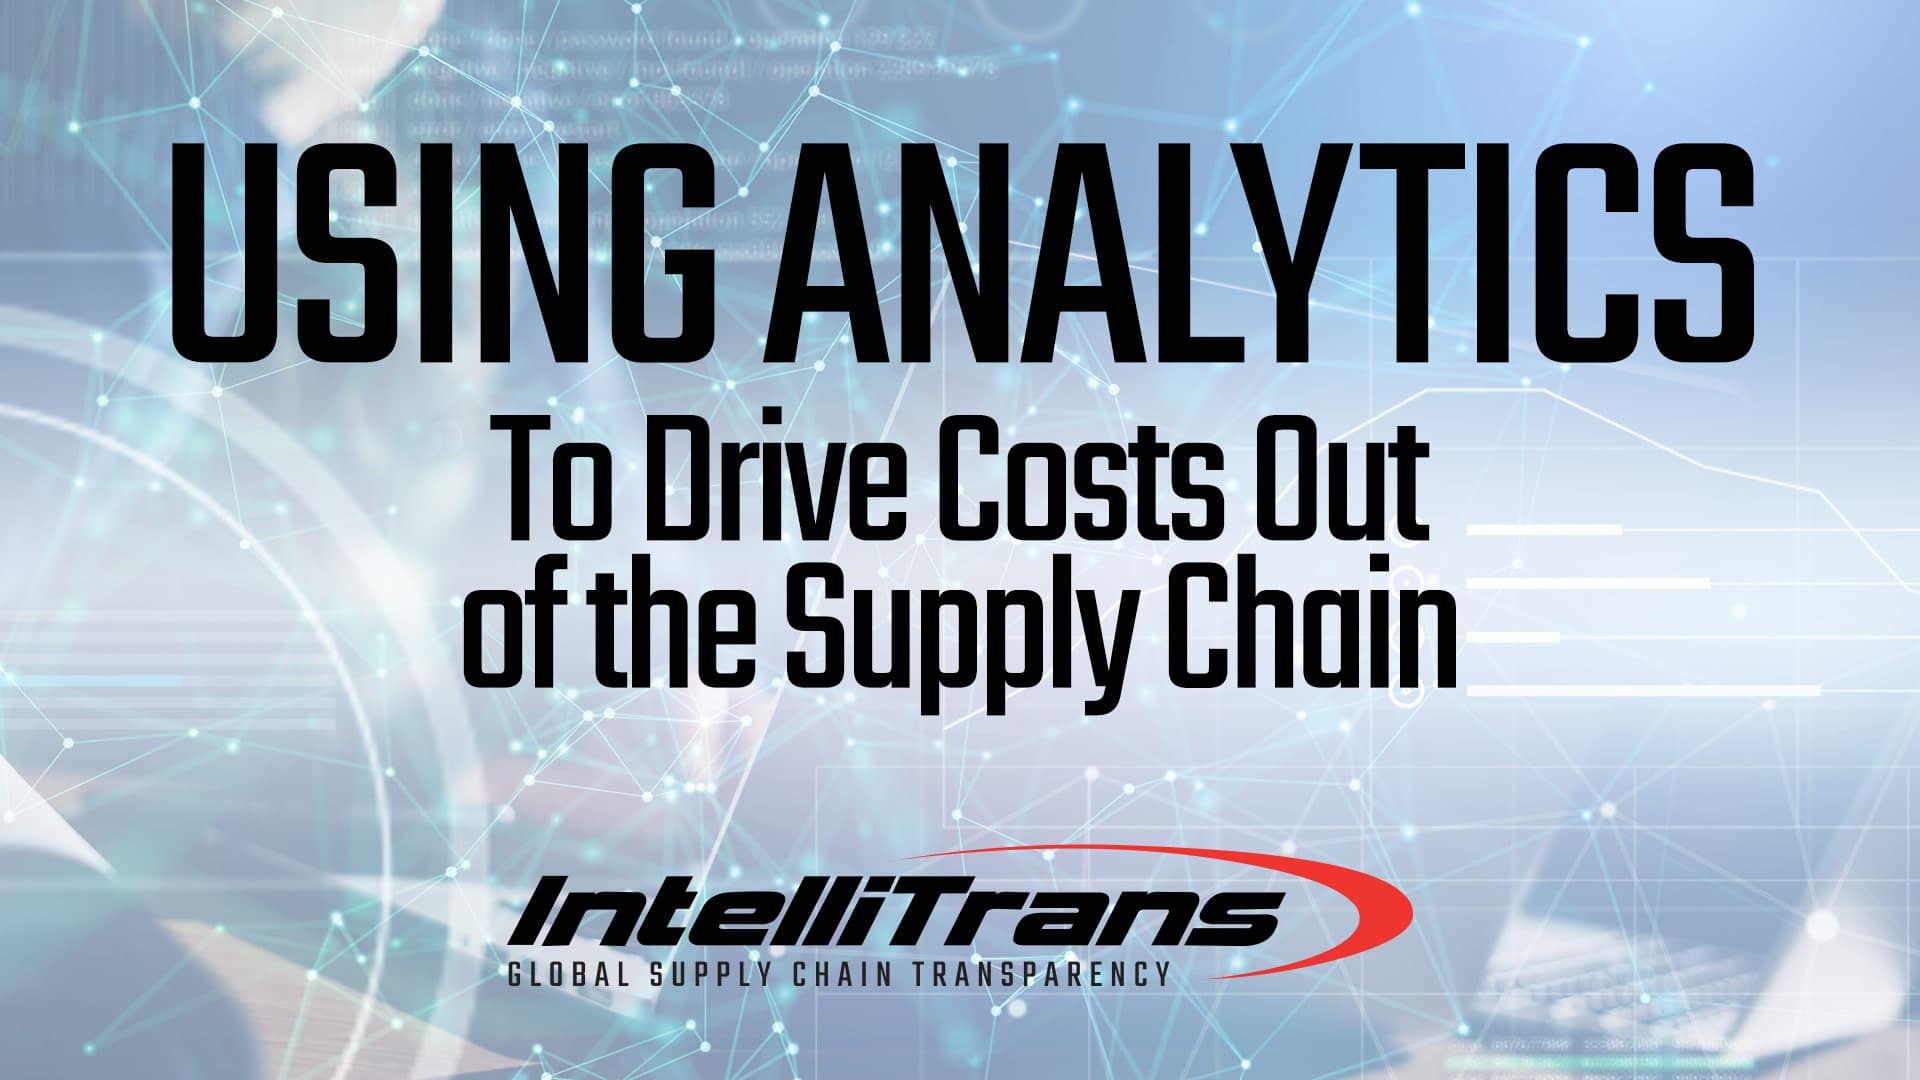 Using Analytics to Drive Costs Out of the Supply Chain